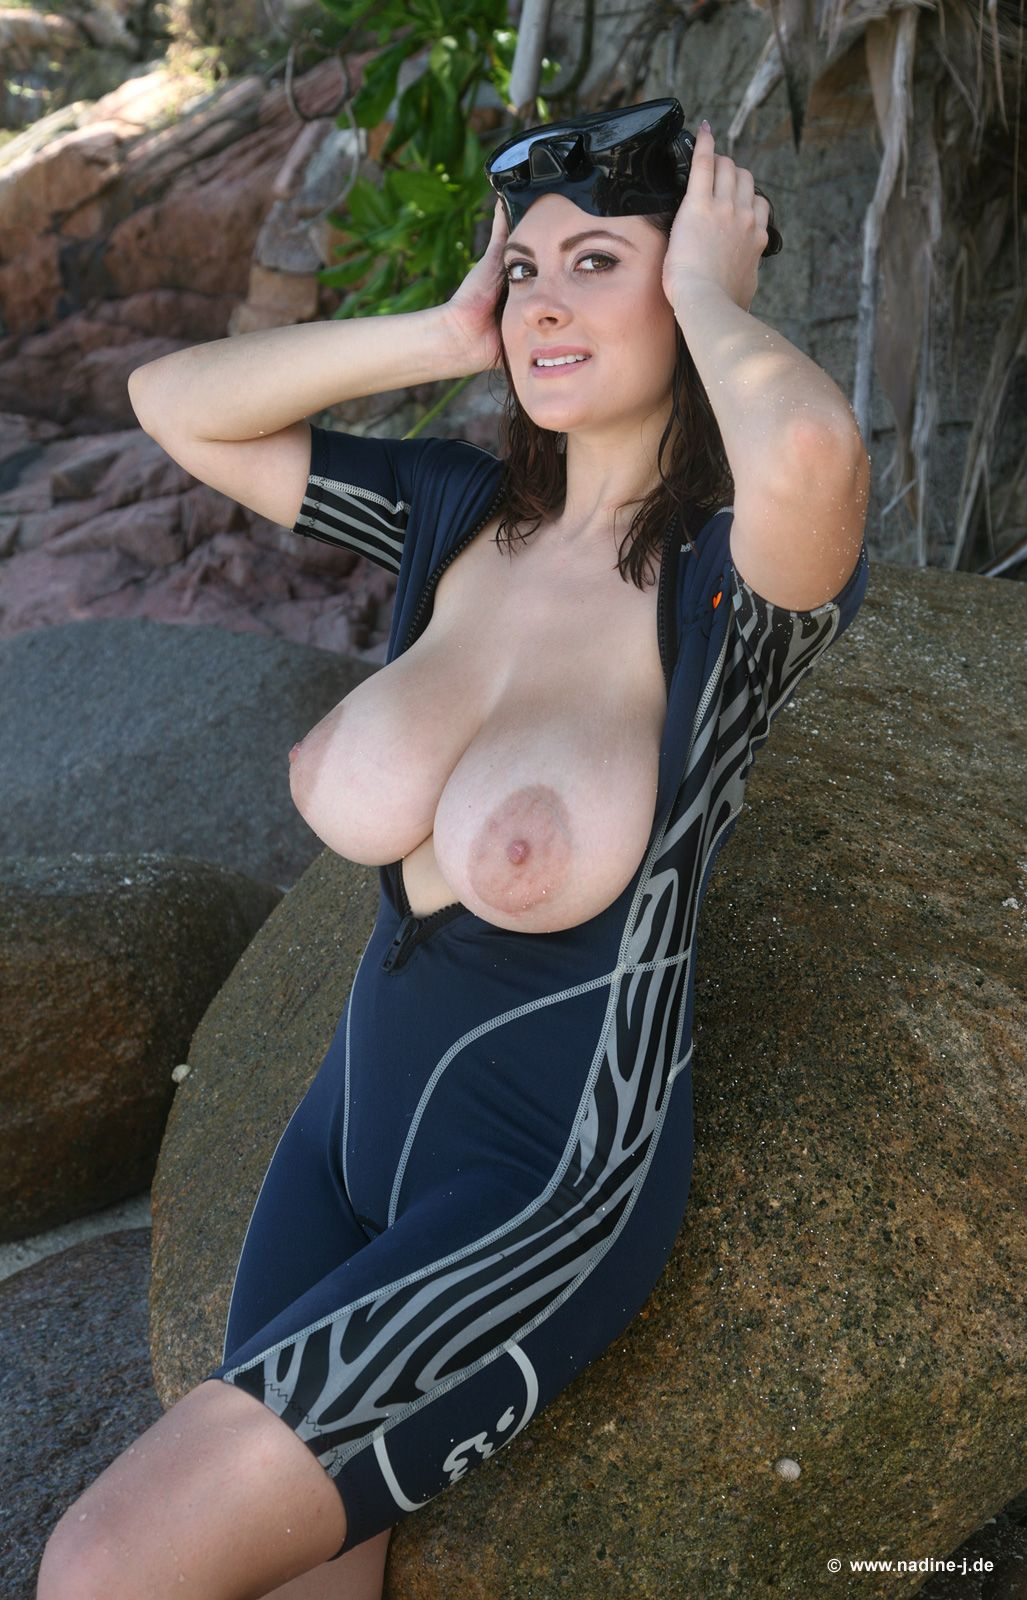 major wardrobe malfunction! wetsuit bursting open, revealing huge